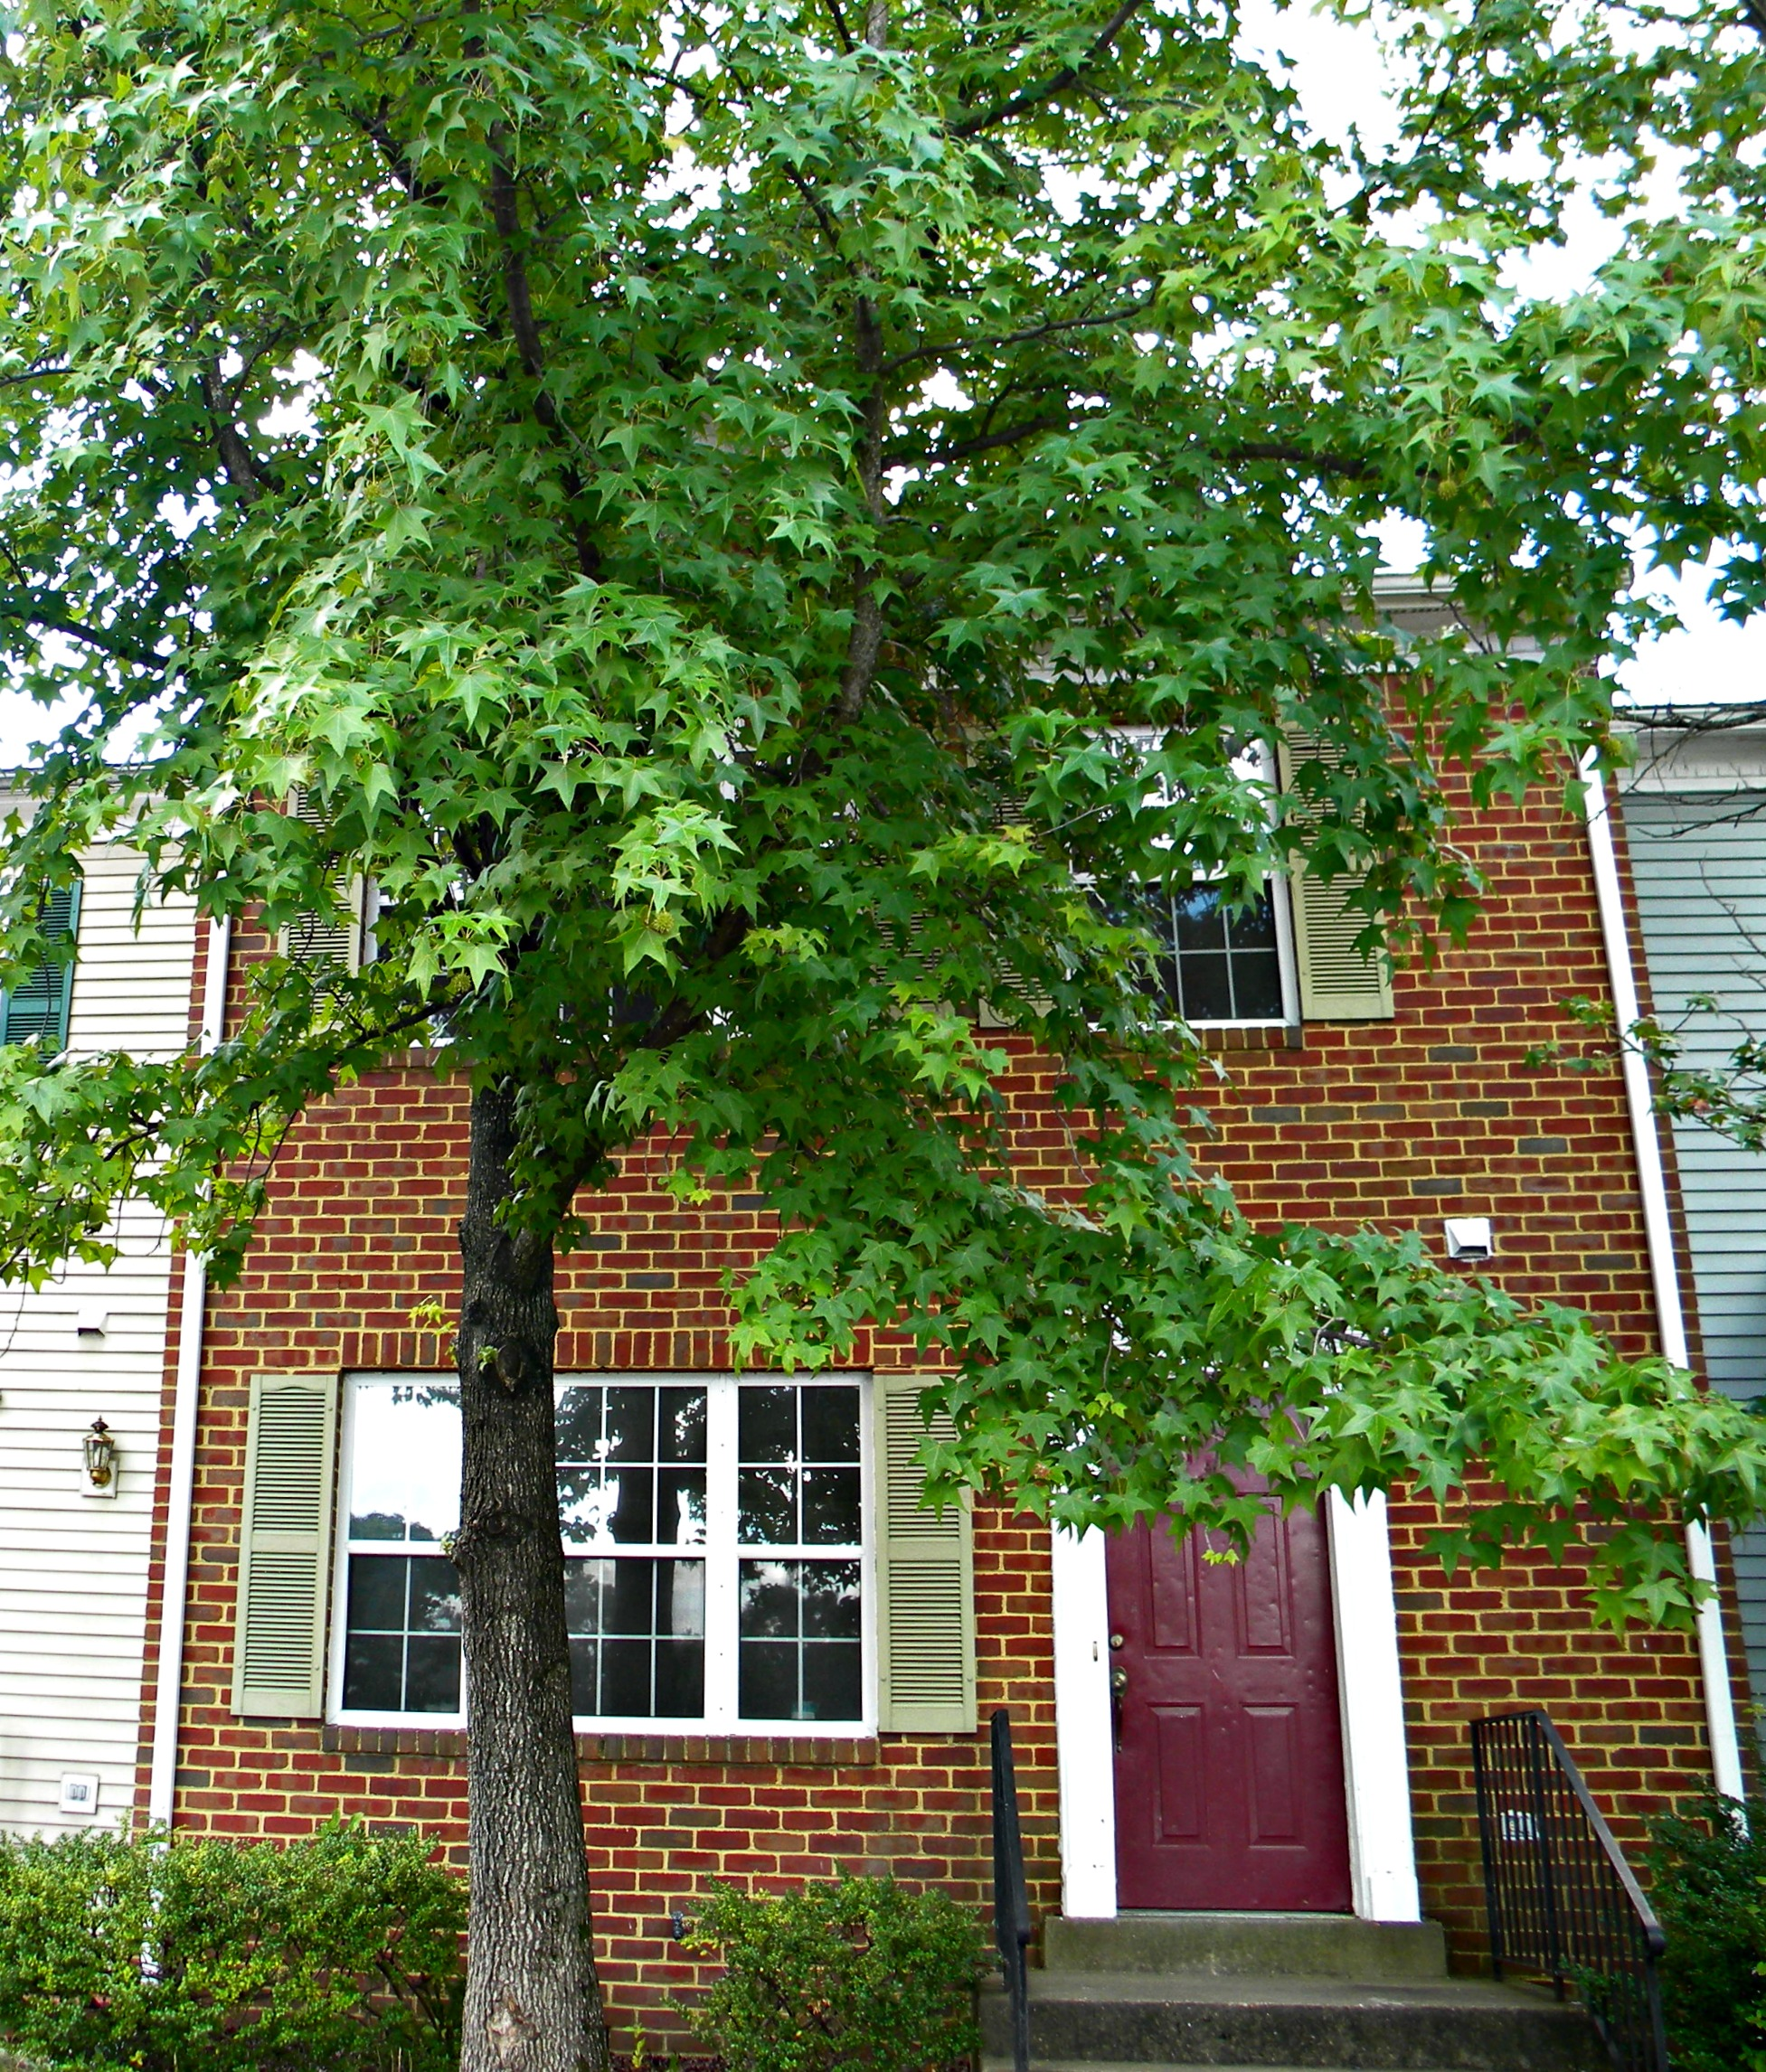 Apt Complex Near Me: Apartments And Houses For Rent Near Me In Dumfries